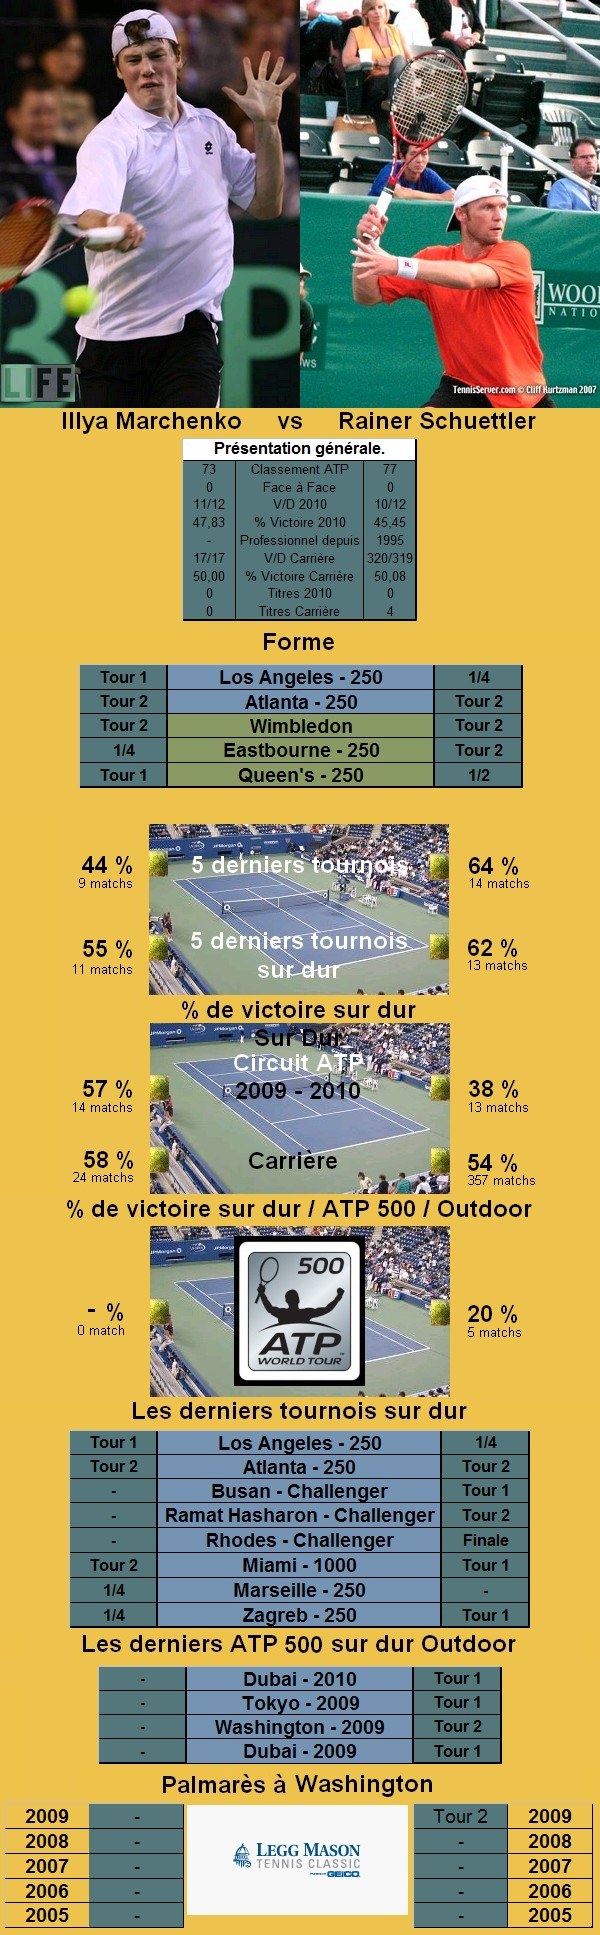 Statistiques tennis de Marchenko contre Schuettler à Washington